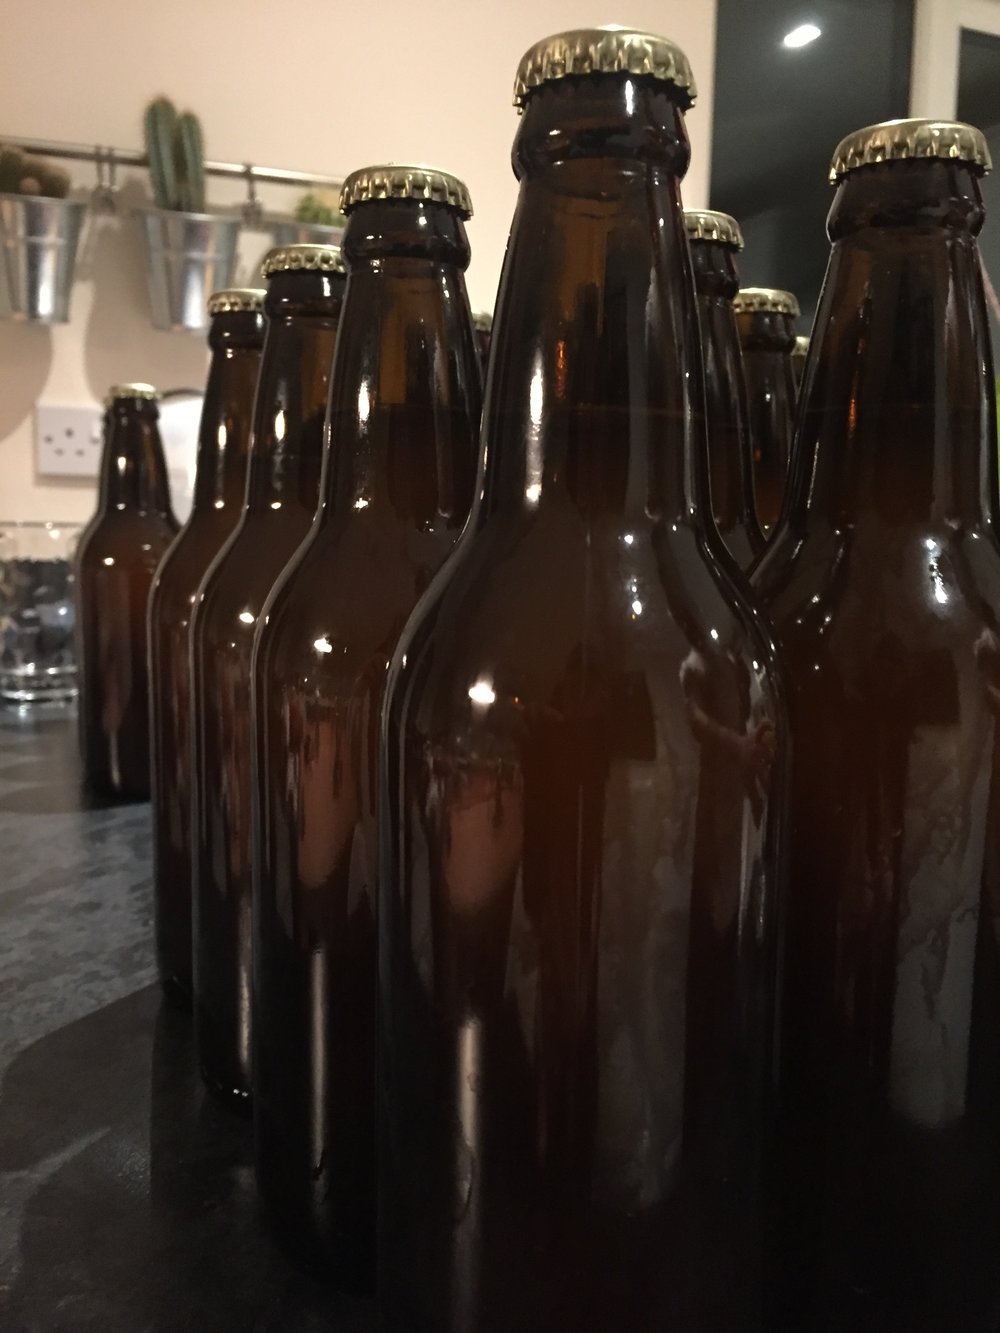 Our side project beer, bottled. Photograph by Paul Forrester.